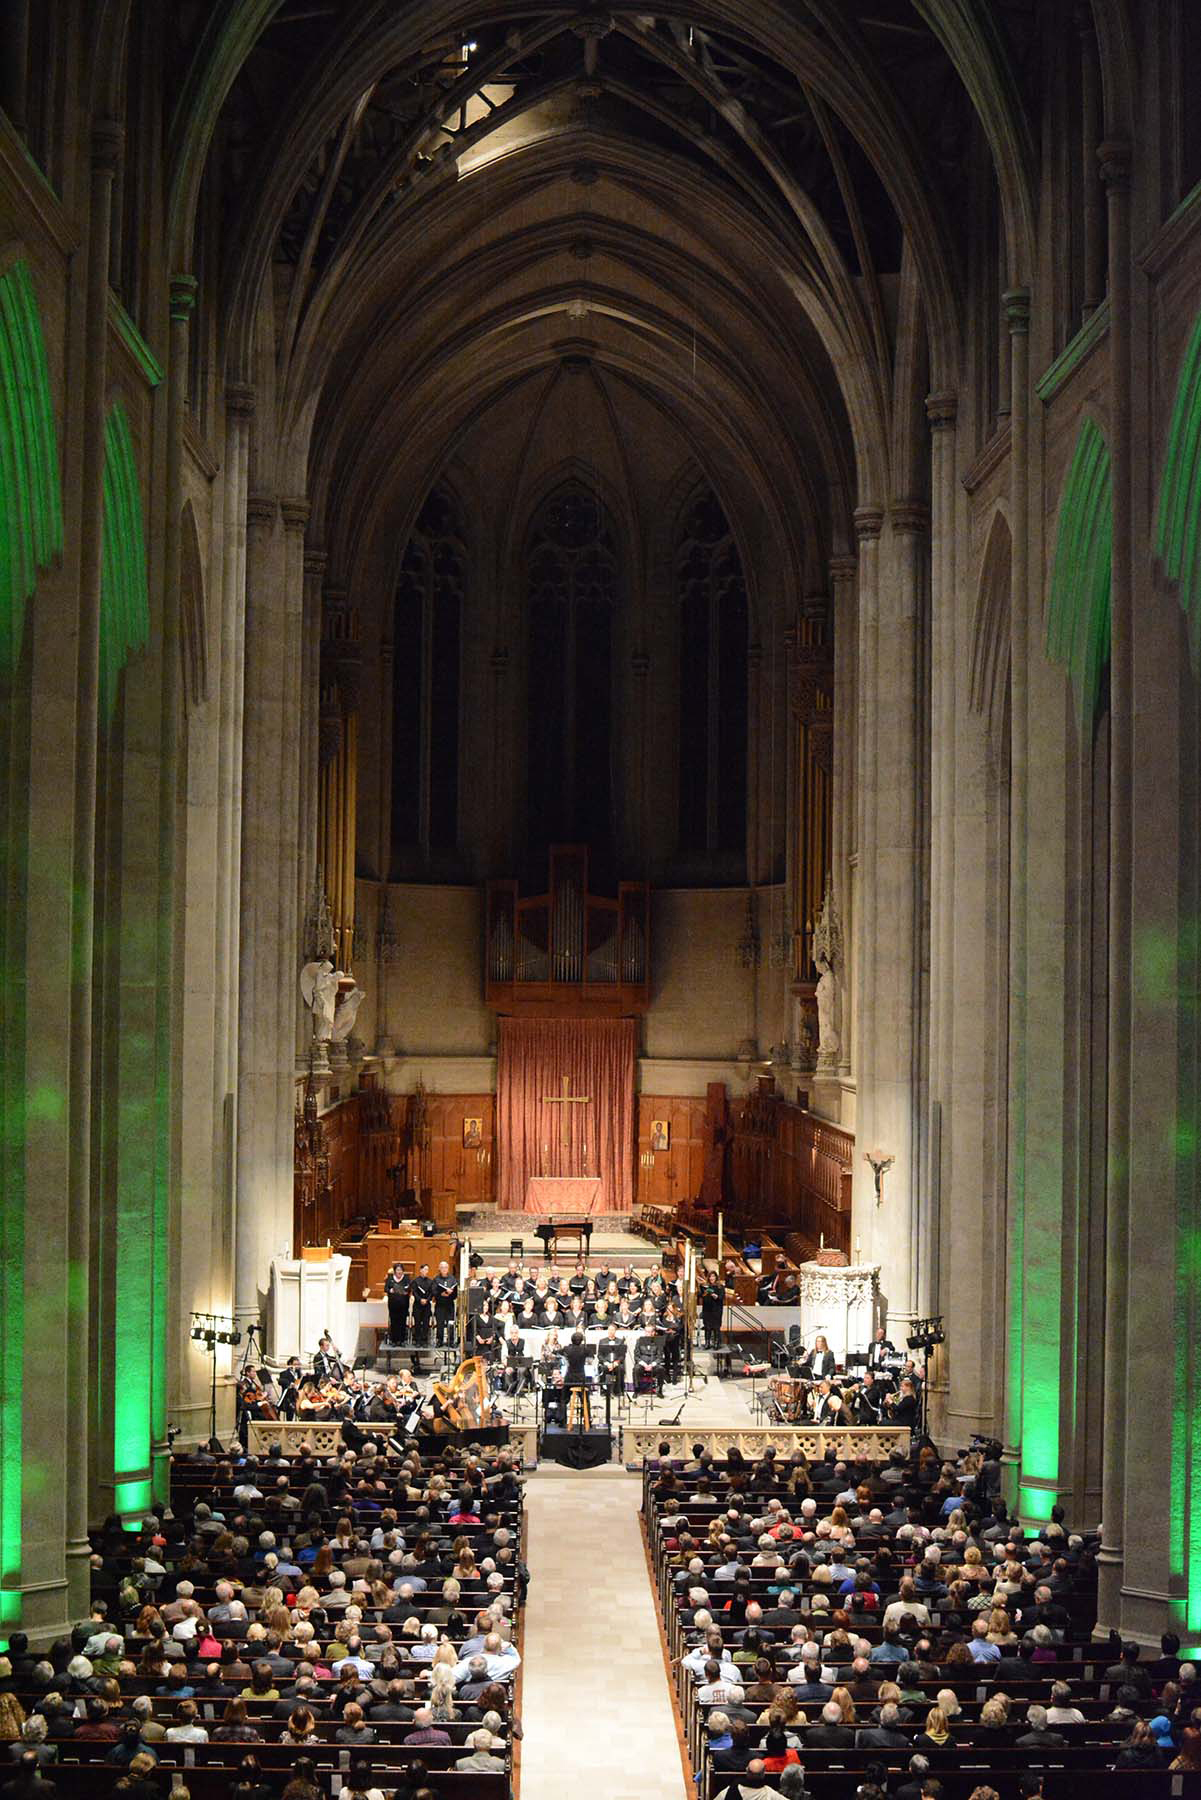 Ireland's Poet-Patriots, Grace Cathedral, April 22, 2016